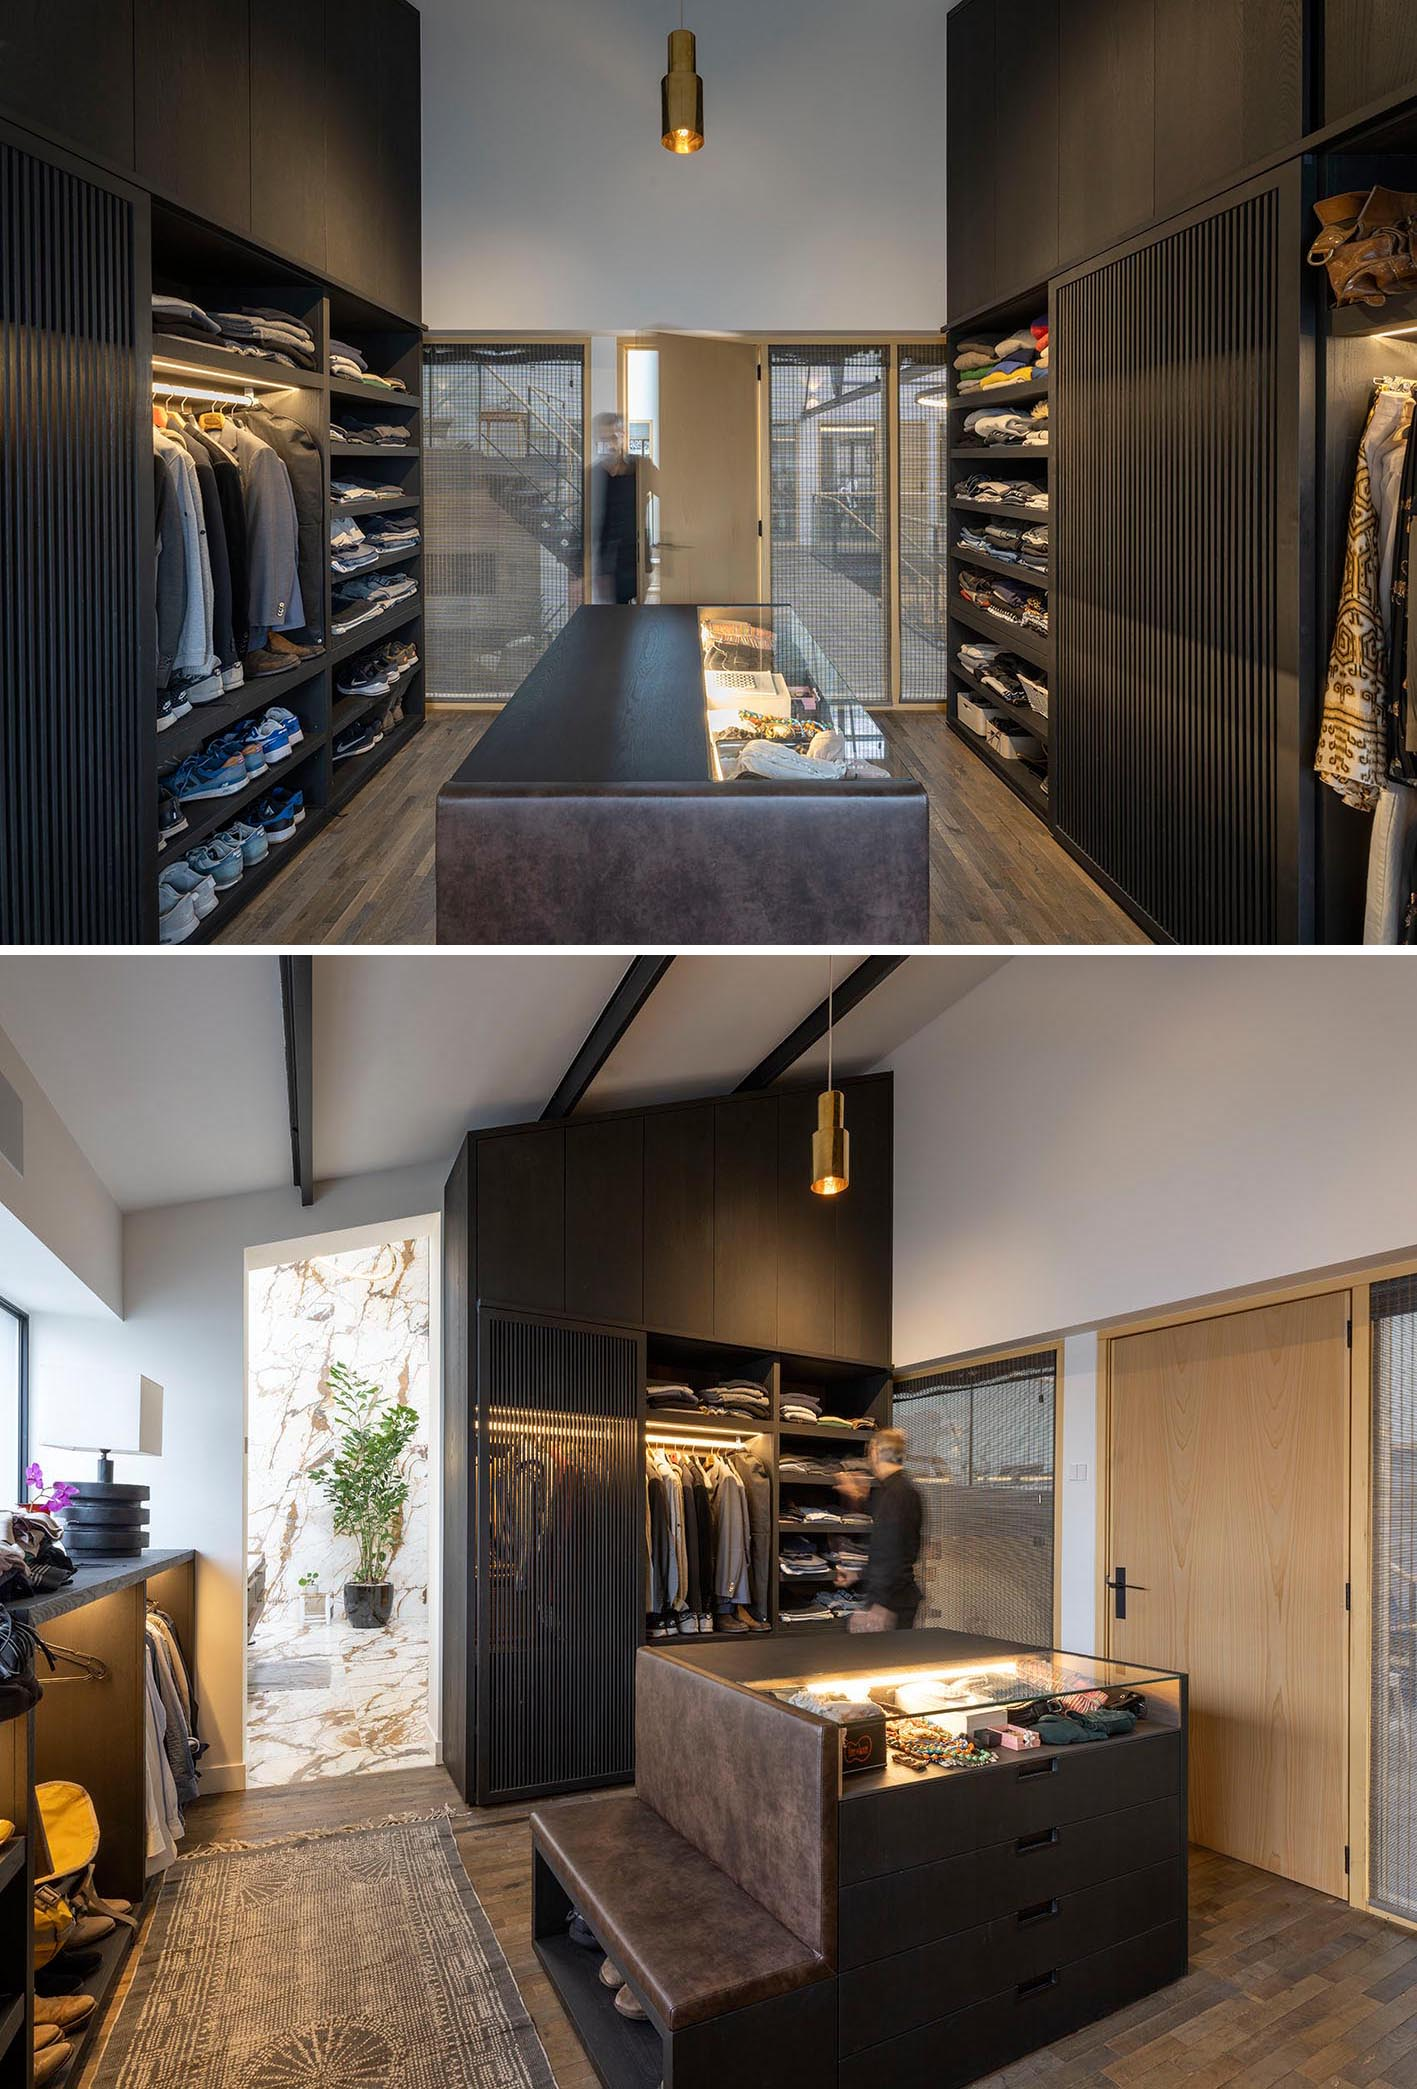 A modern walk-in closet with black cabinets, a central accessories island, and plenty of open shelving.